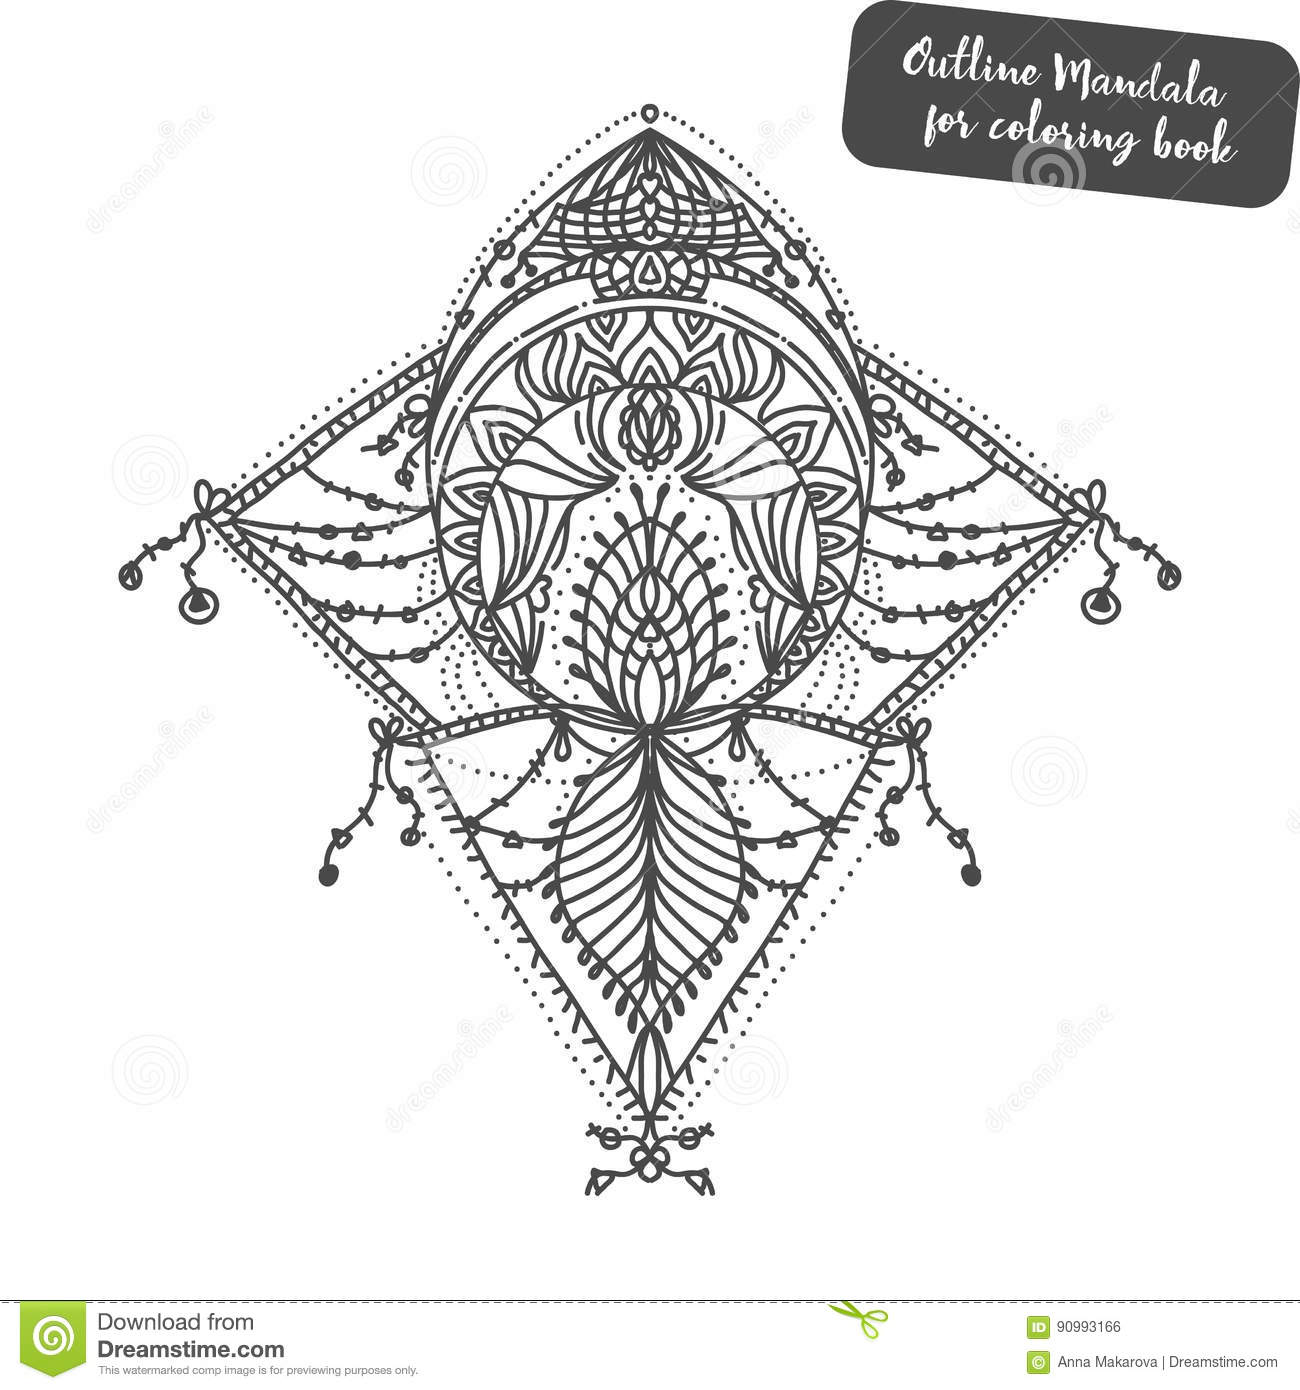 Royalty Free Illustration Download Outline Mandala For Coloring Book